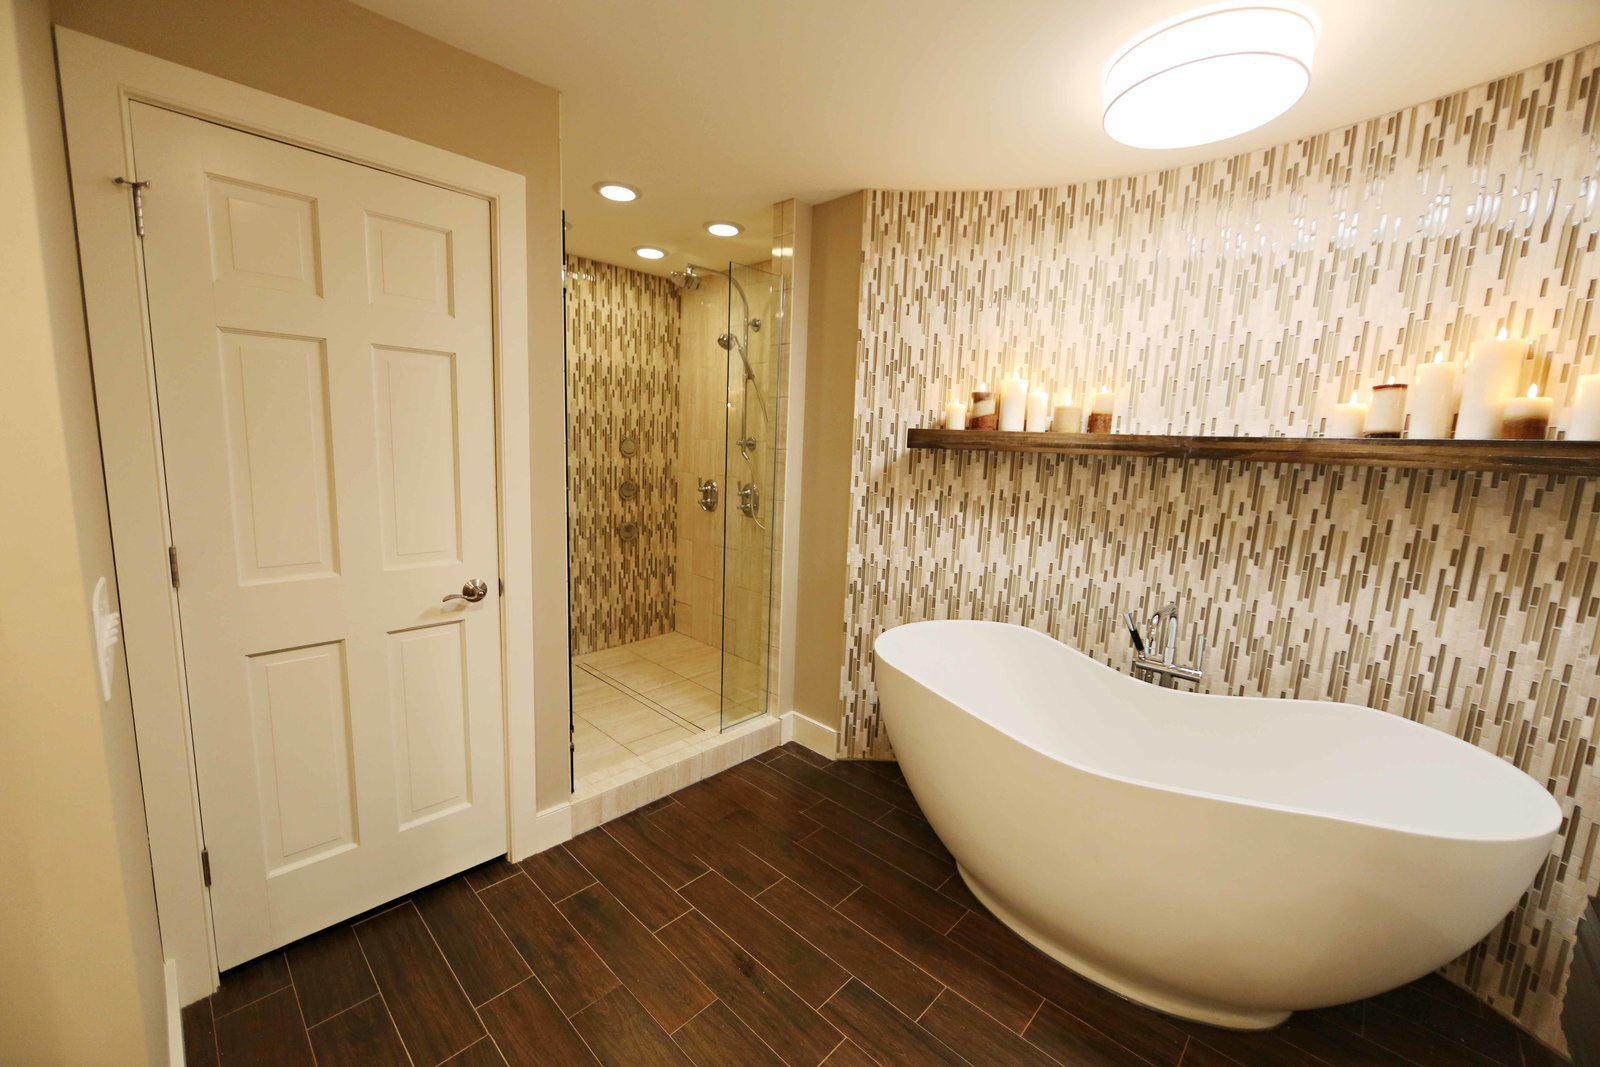 Getting a Solatube tubular daylighting device is painless. Their national network of dealers offers free in-home consultation and comprehensive installation services.  Bathroom by Nate Irwin from See How Solatube Products Stream Natural Light Into Even the Darkest Corners of the Home